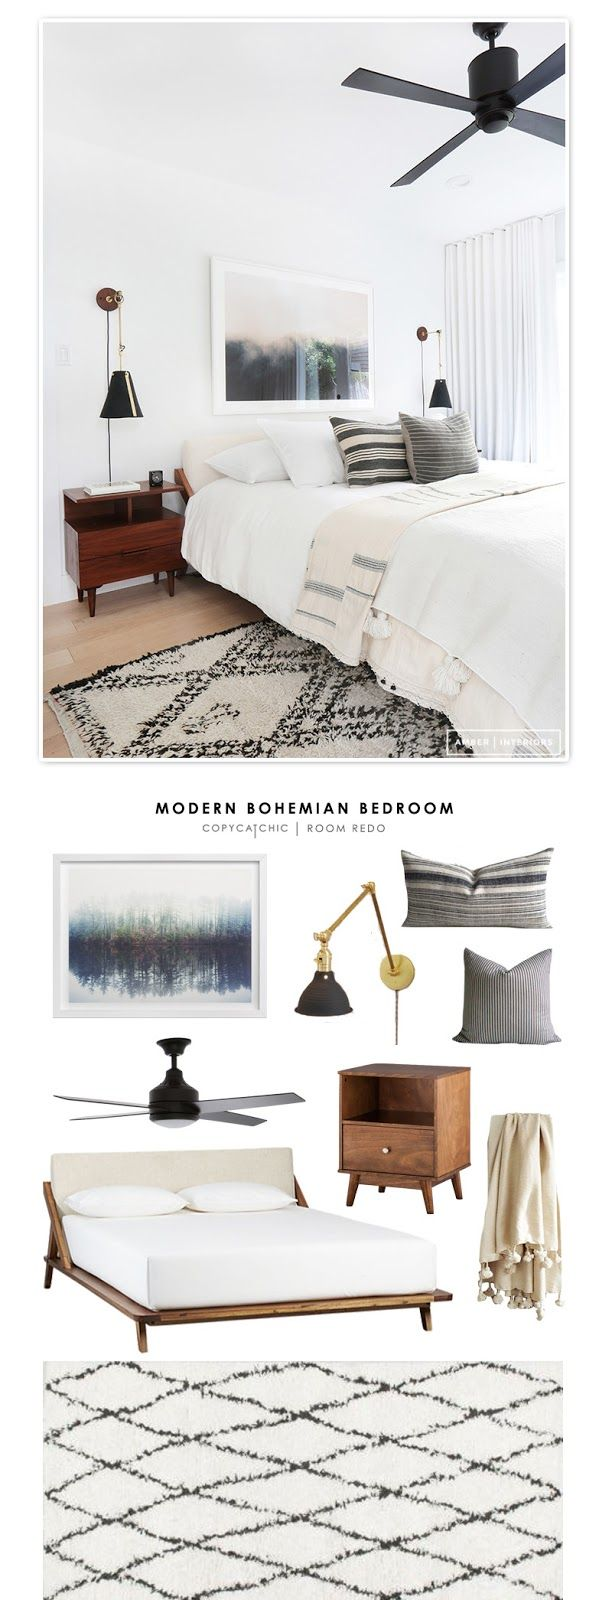 Copy Cat Chic Room Redo | Modern Bohemian Bedroom - copycatchic